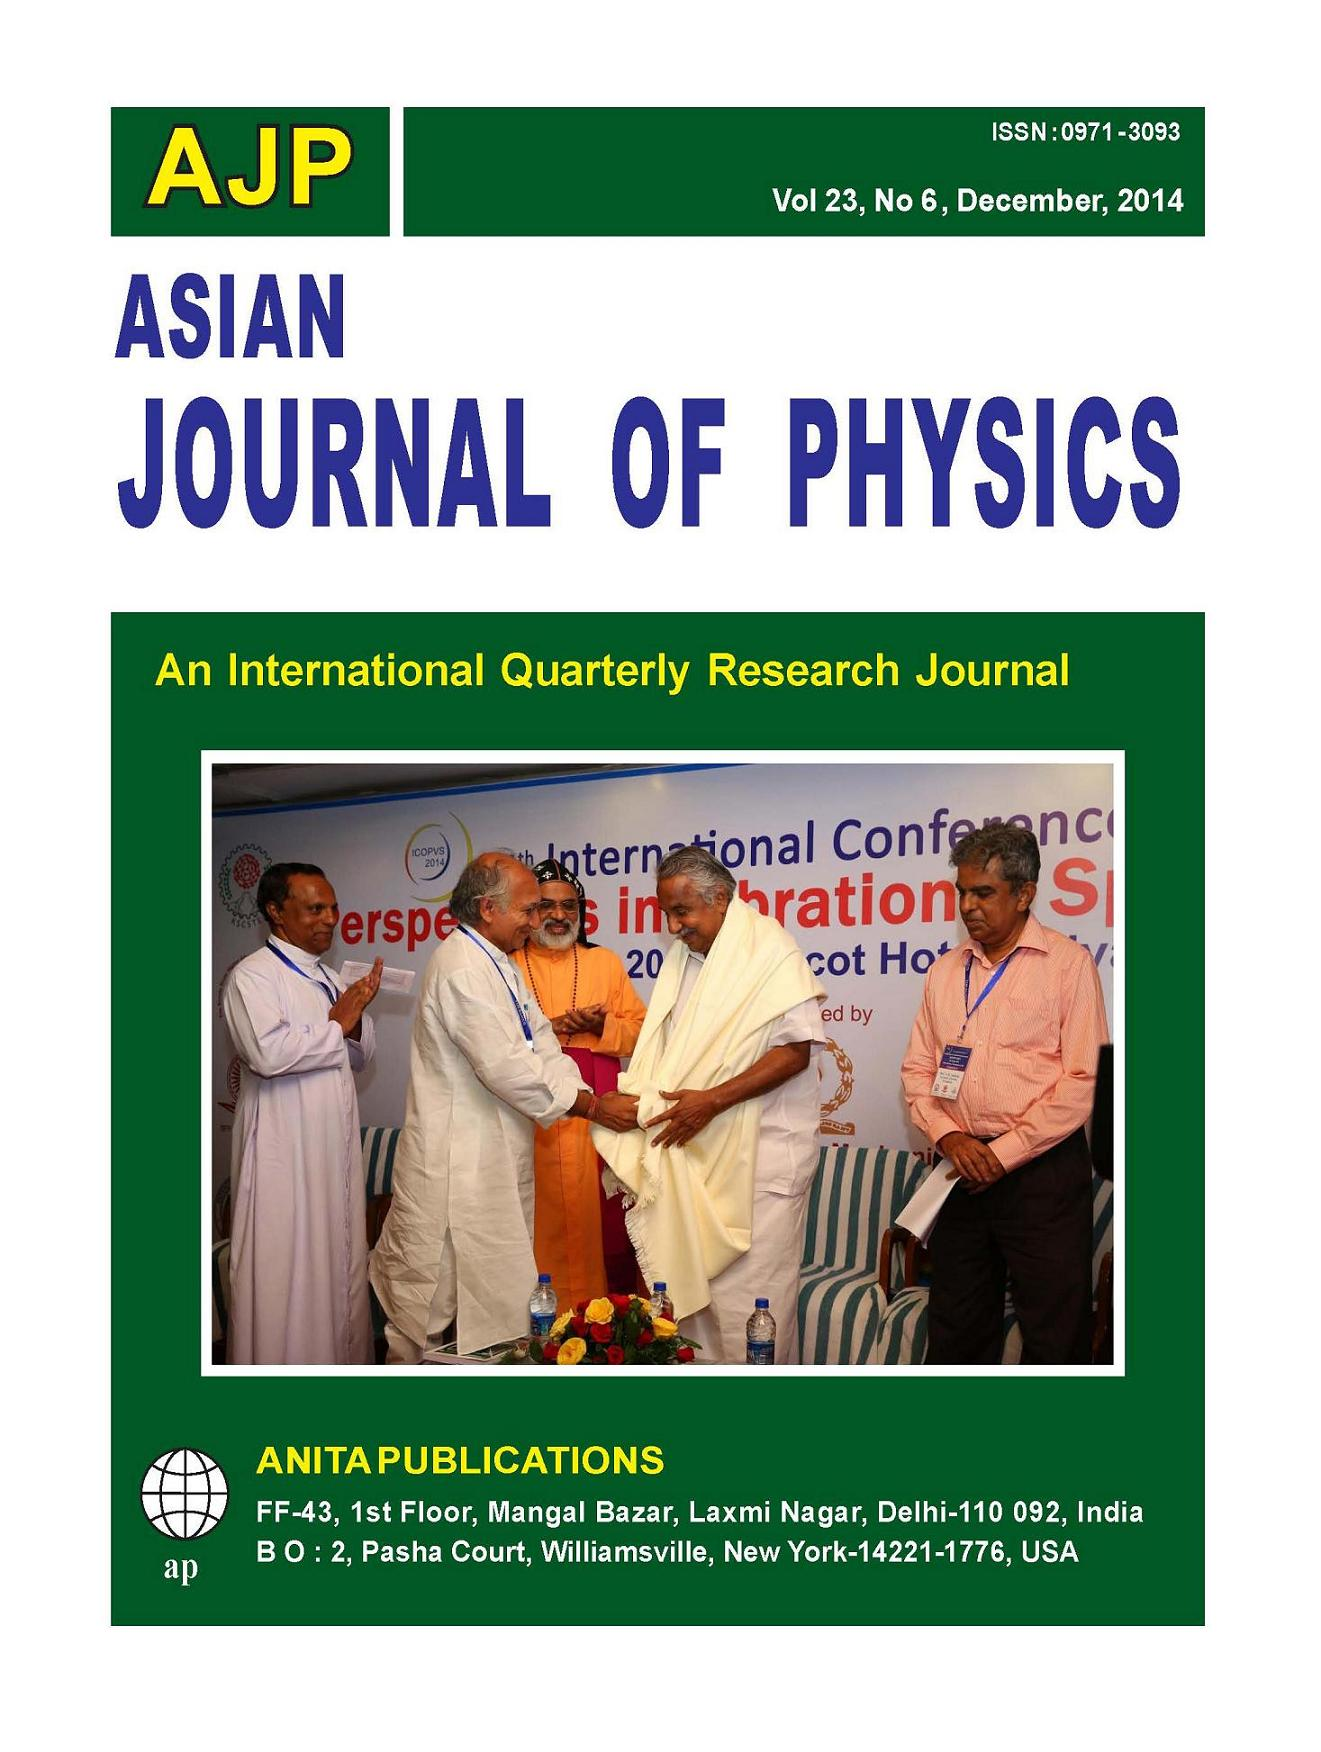 AJP Vol 21 no 1